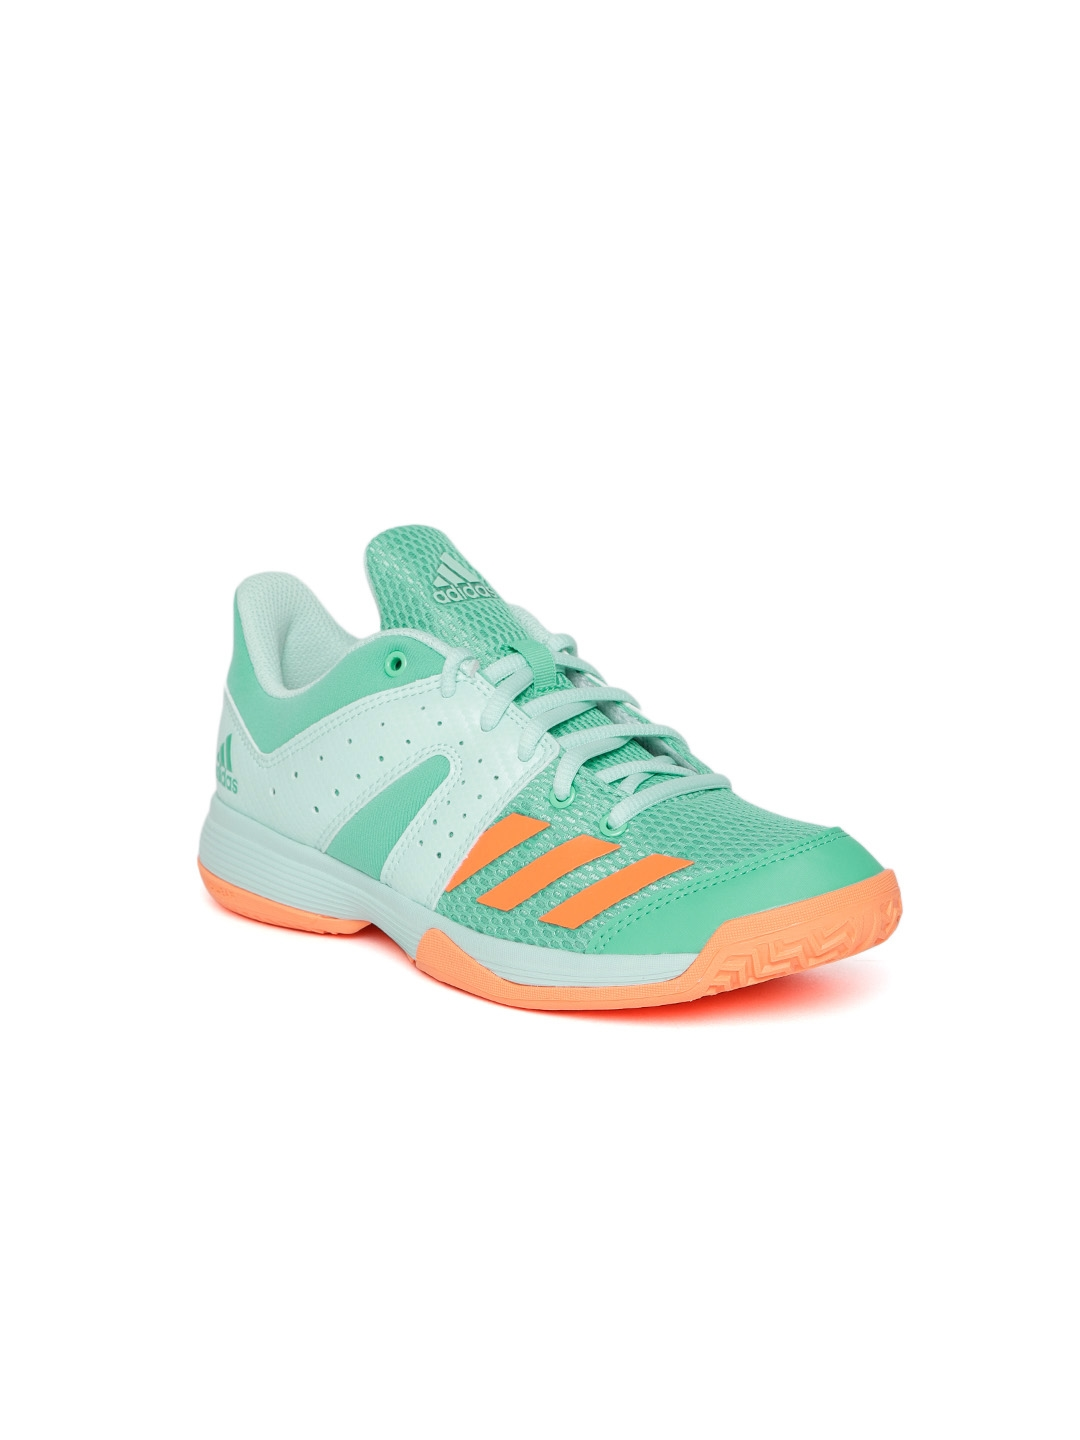 Buy ADIDAS Kids Green Wucht Junior Badminton Shoes - Sports Shoes ... c1c8a1b65